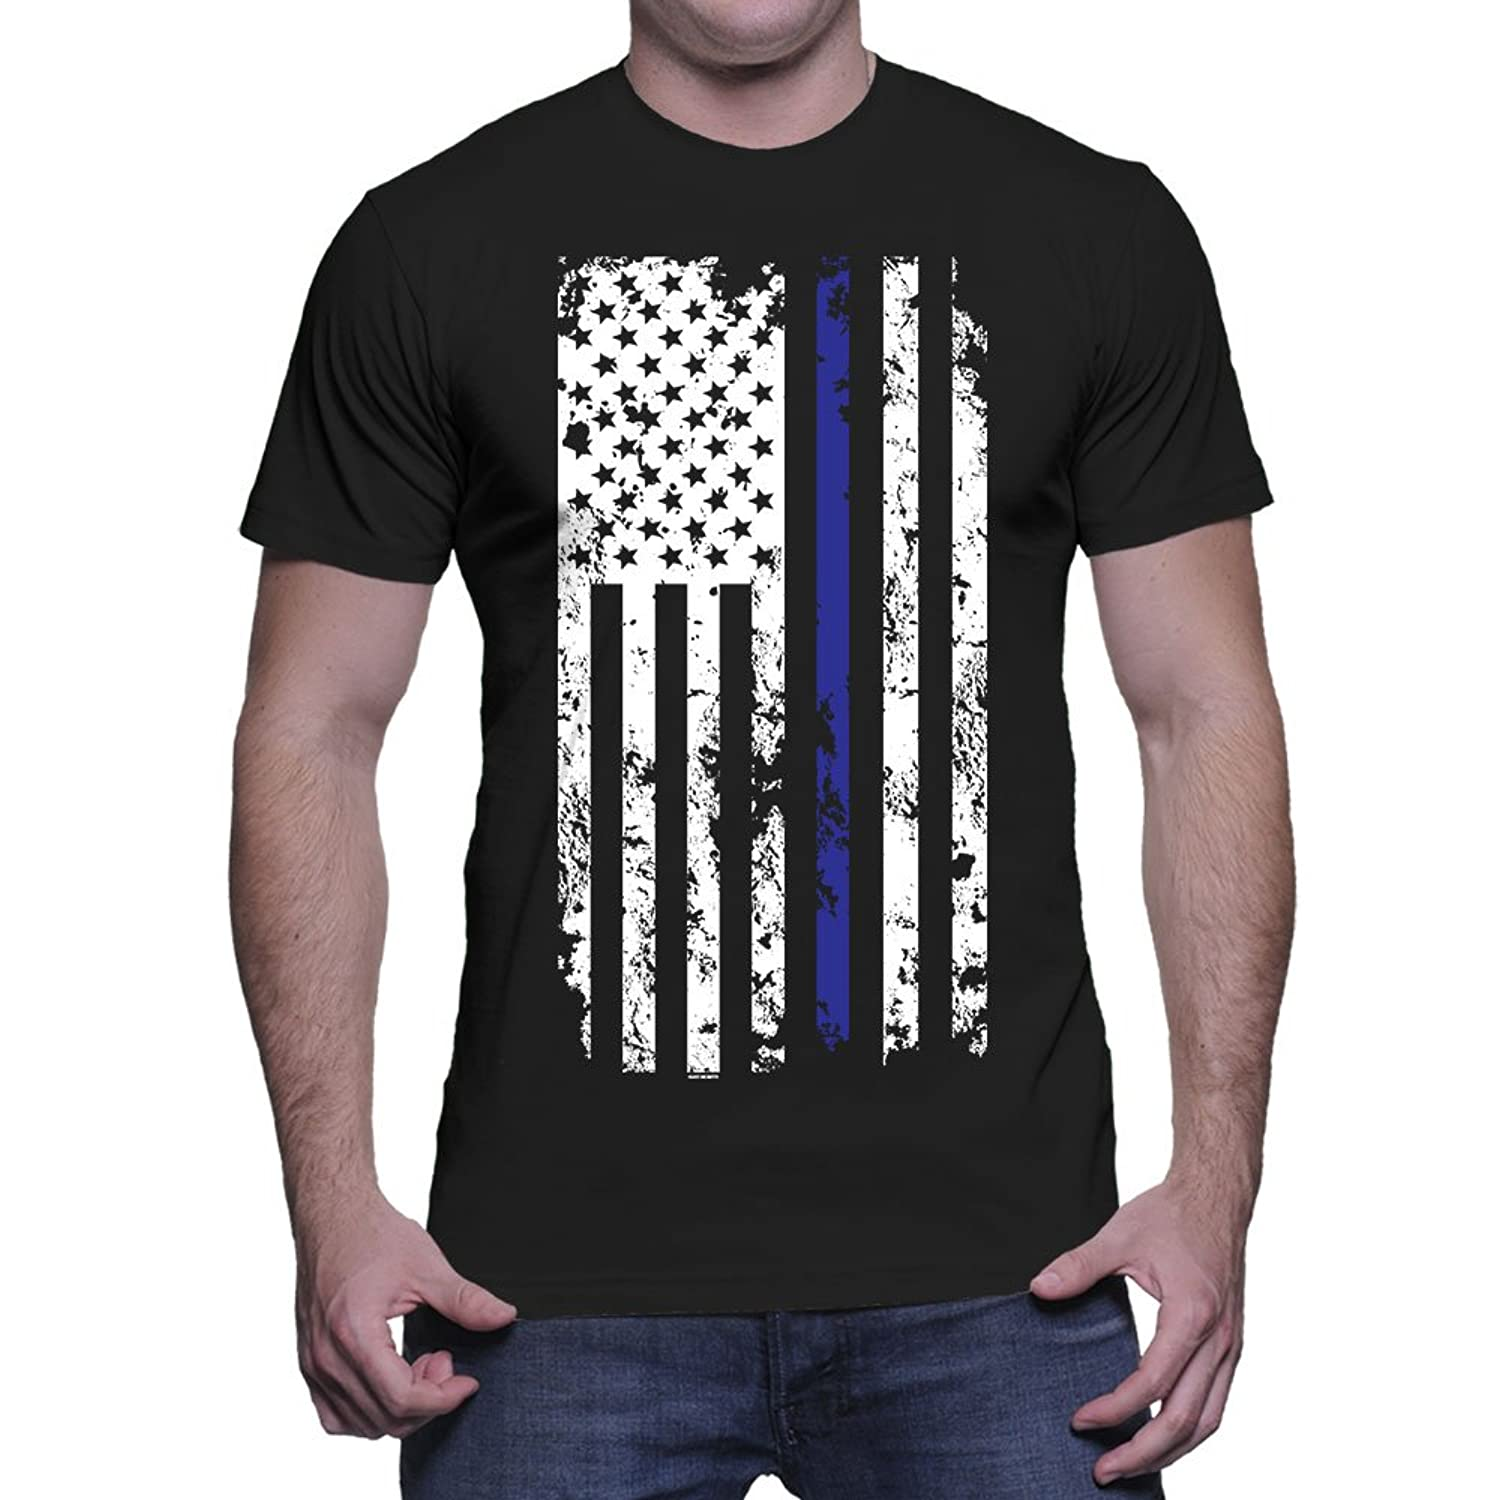 Amazon.com: Mens Thin Blue Line American Flag T-shirt: Clothing